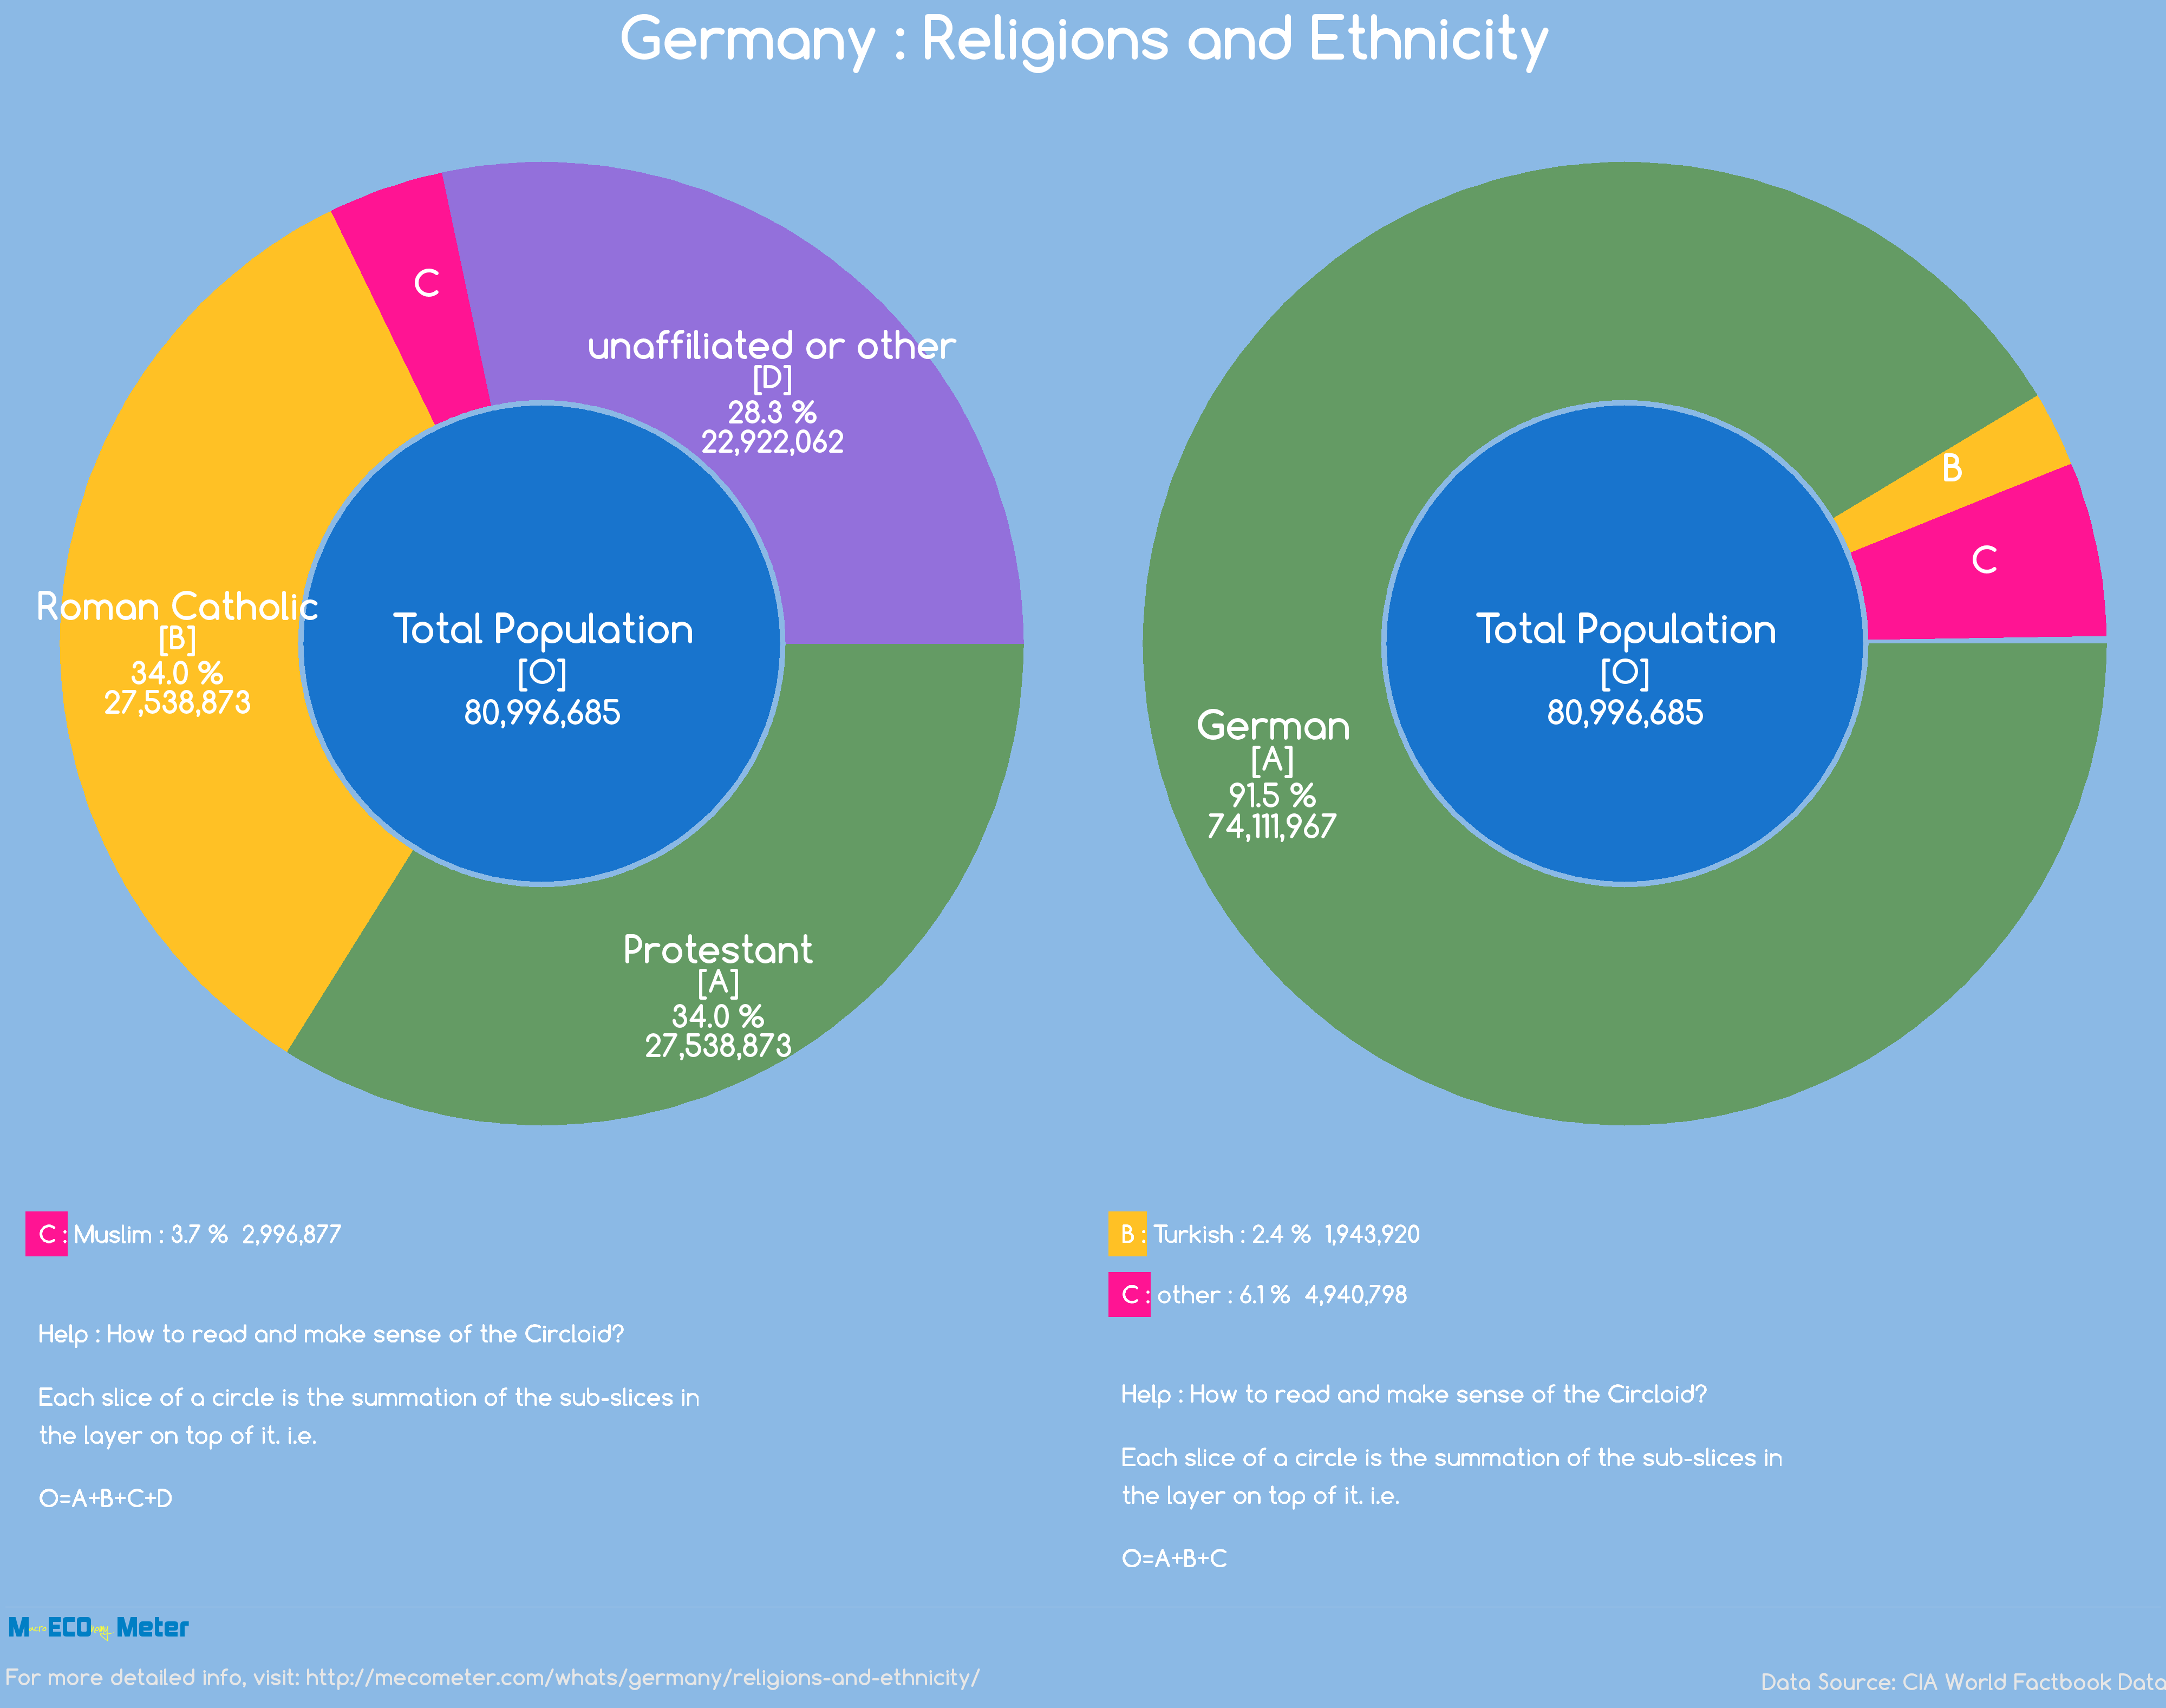 Religions and Ethnicity - Germany